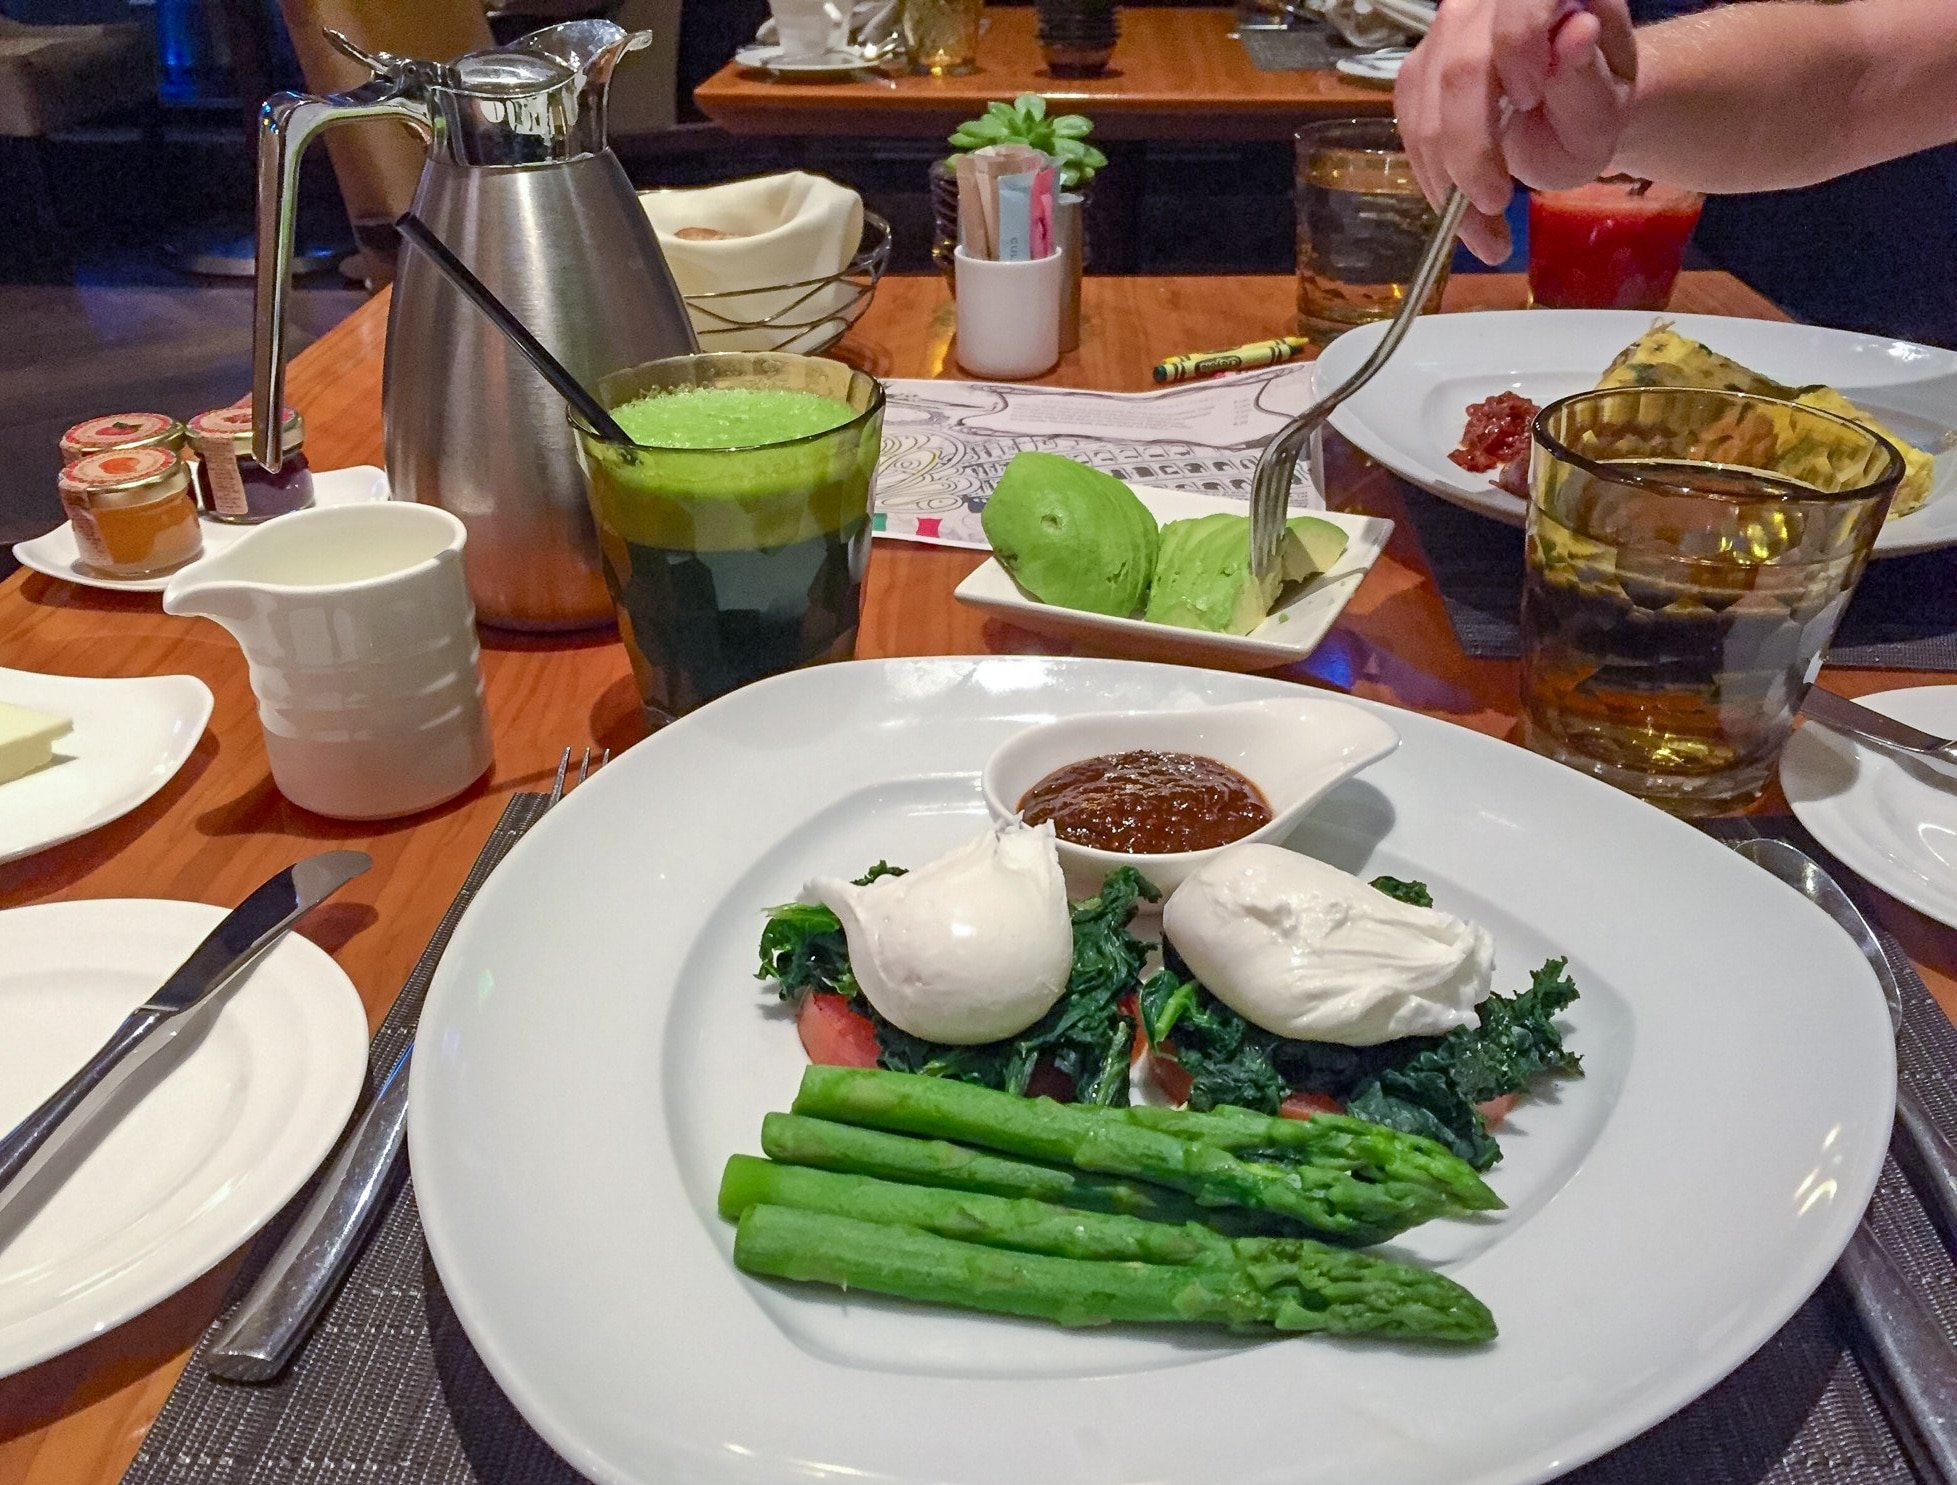 Poached eggs, steamed asparagus, and other vegetables on a plate at Culina as part of a healthy breakfast spread.